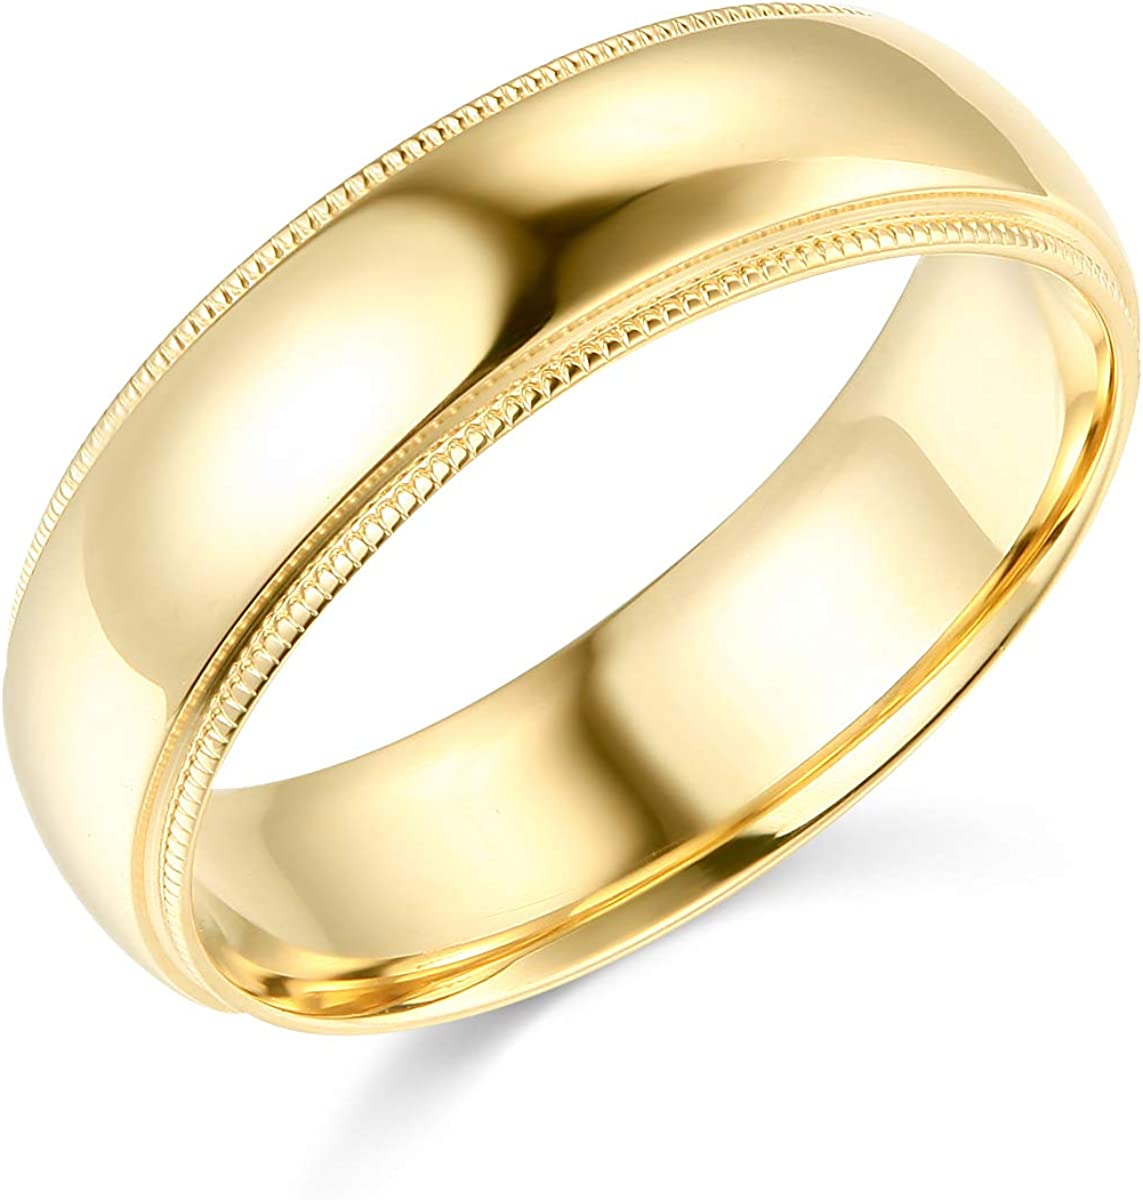 White Gold Heavy 6mm COMFORT FIT Milgrain Traditional Wedding Band Ring OR Wellingsale 14k Yellow